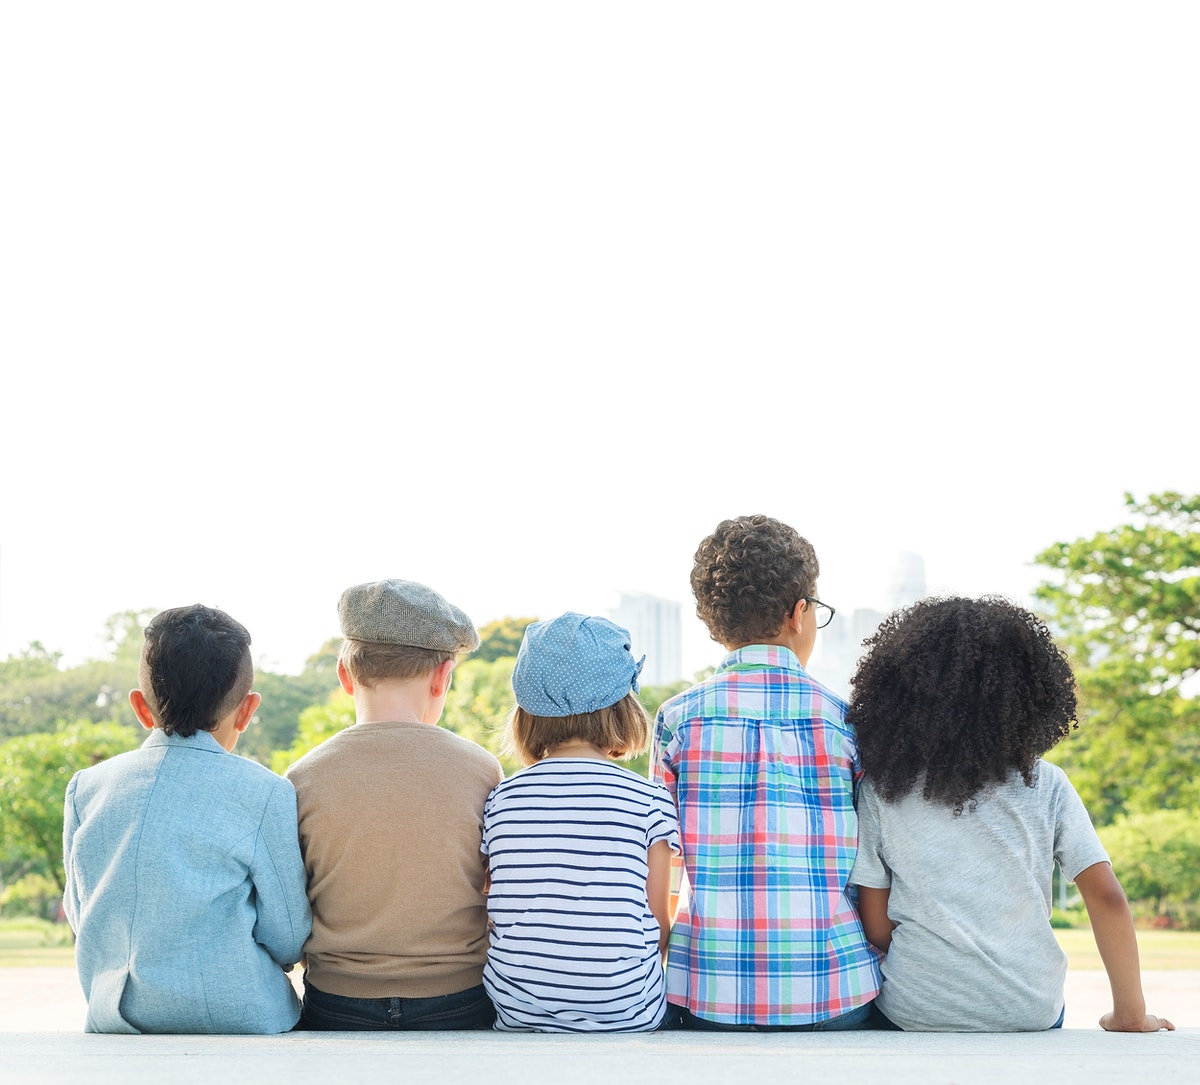 Rear view of little kids sitting together outdoors